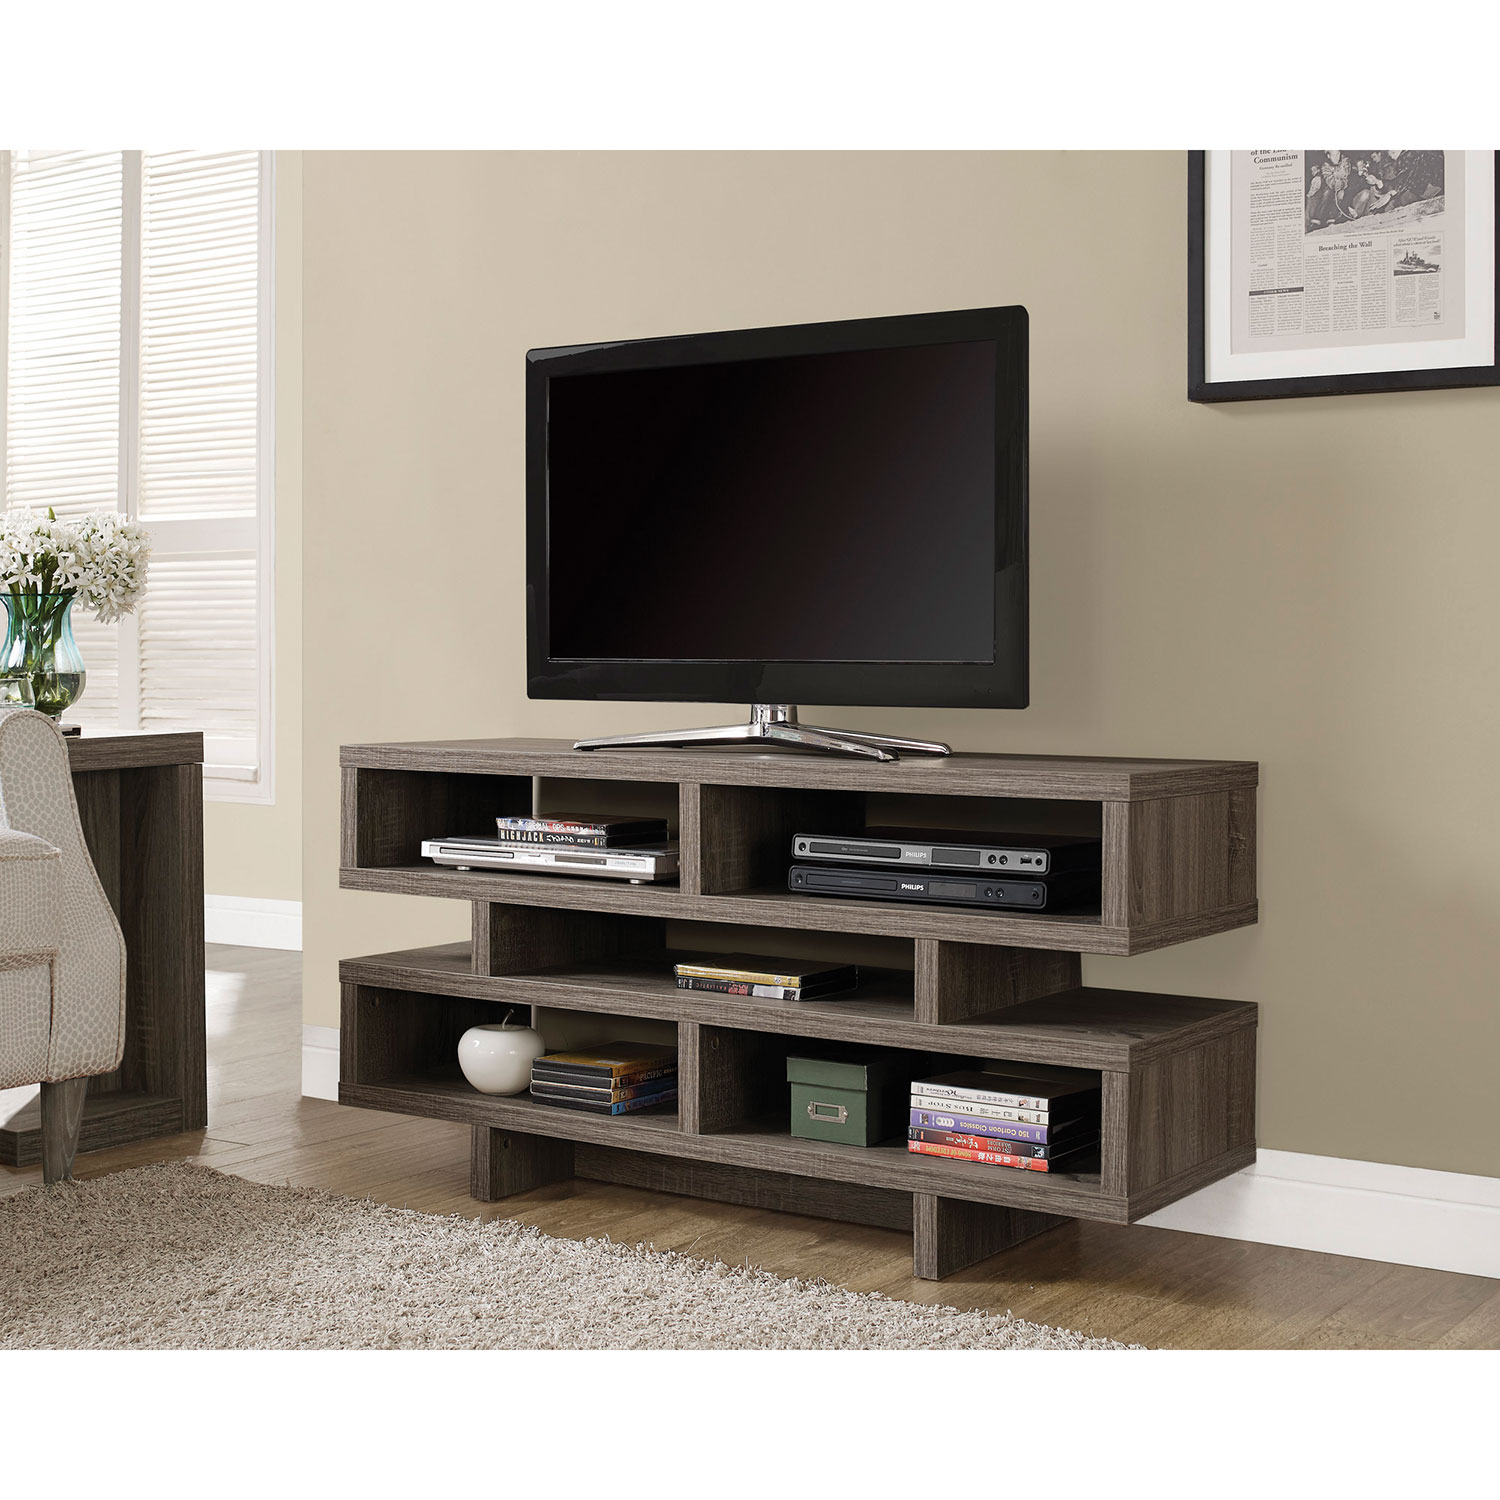 monarch tv stand for tvs up to   dark taupe  tv stands  best  - monarch tv stand for tvs up to   dark taupe  tv stands  best buycanada